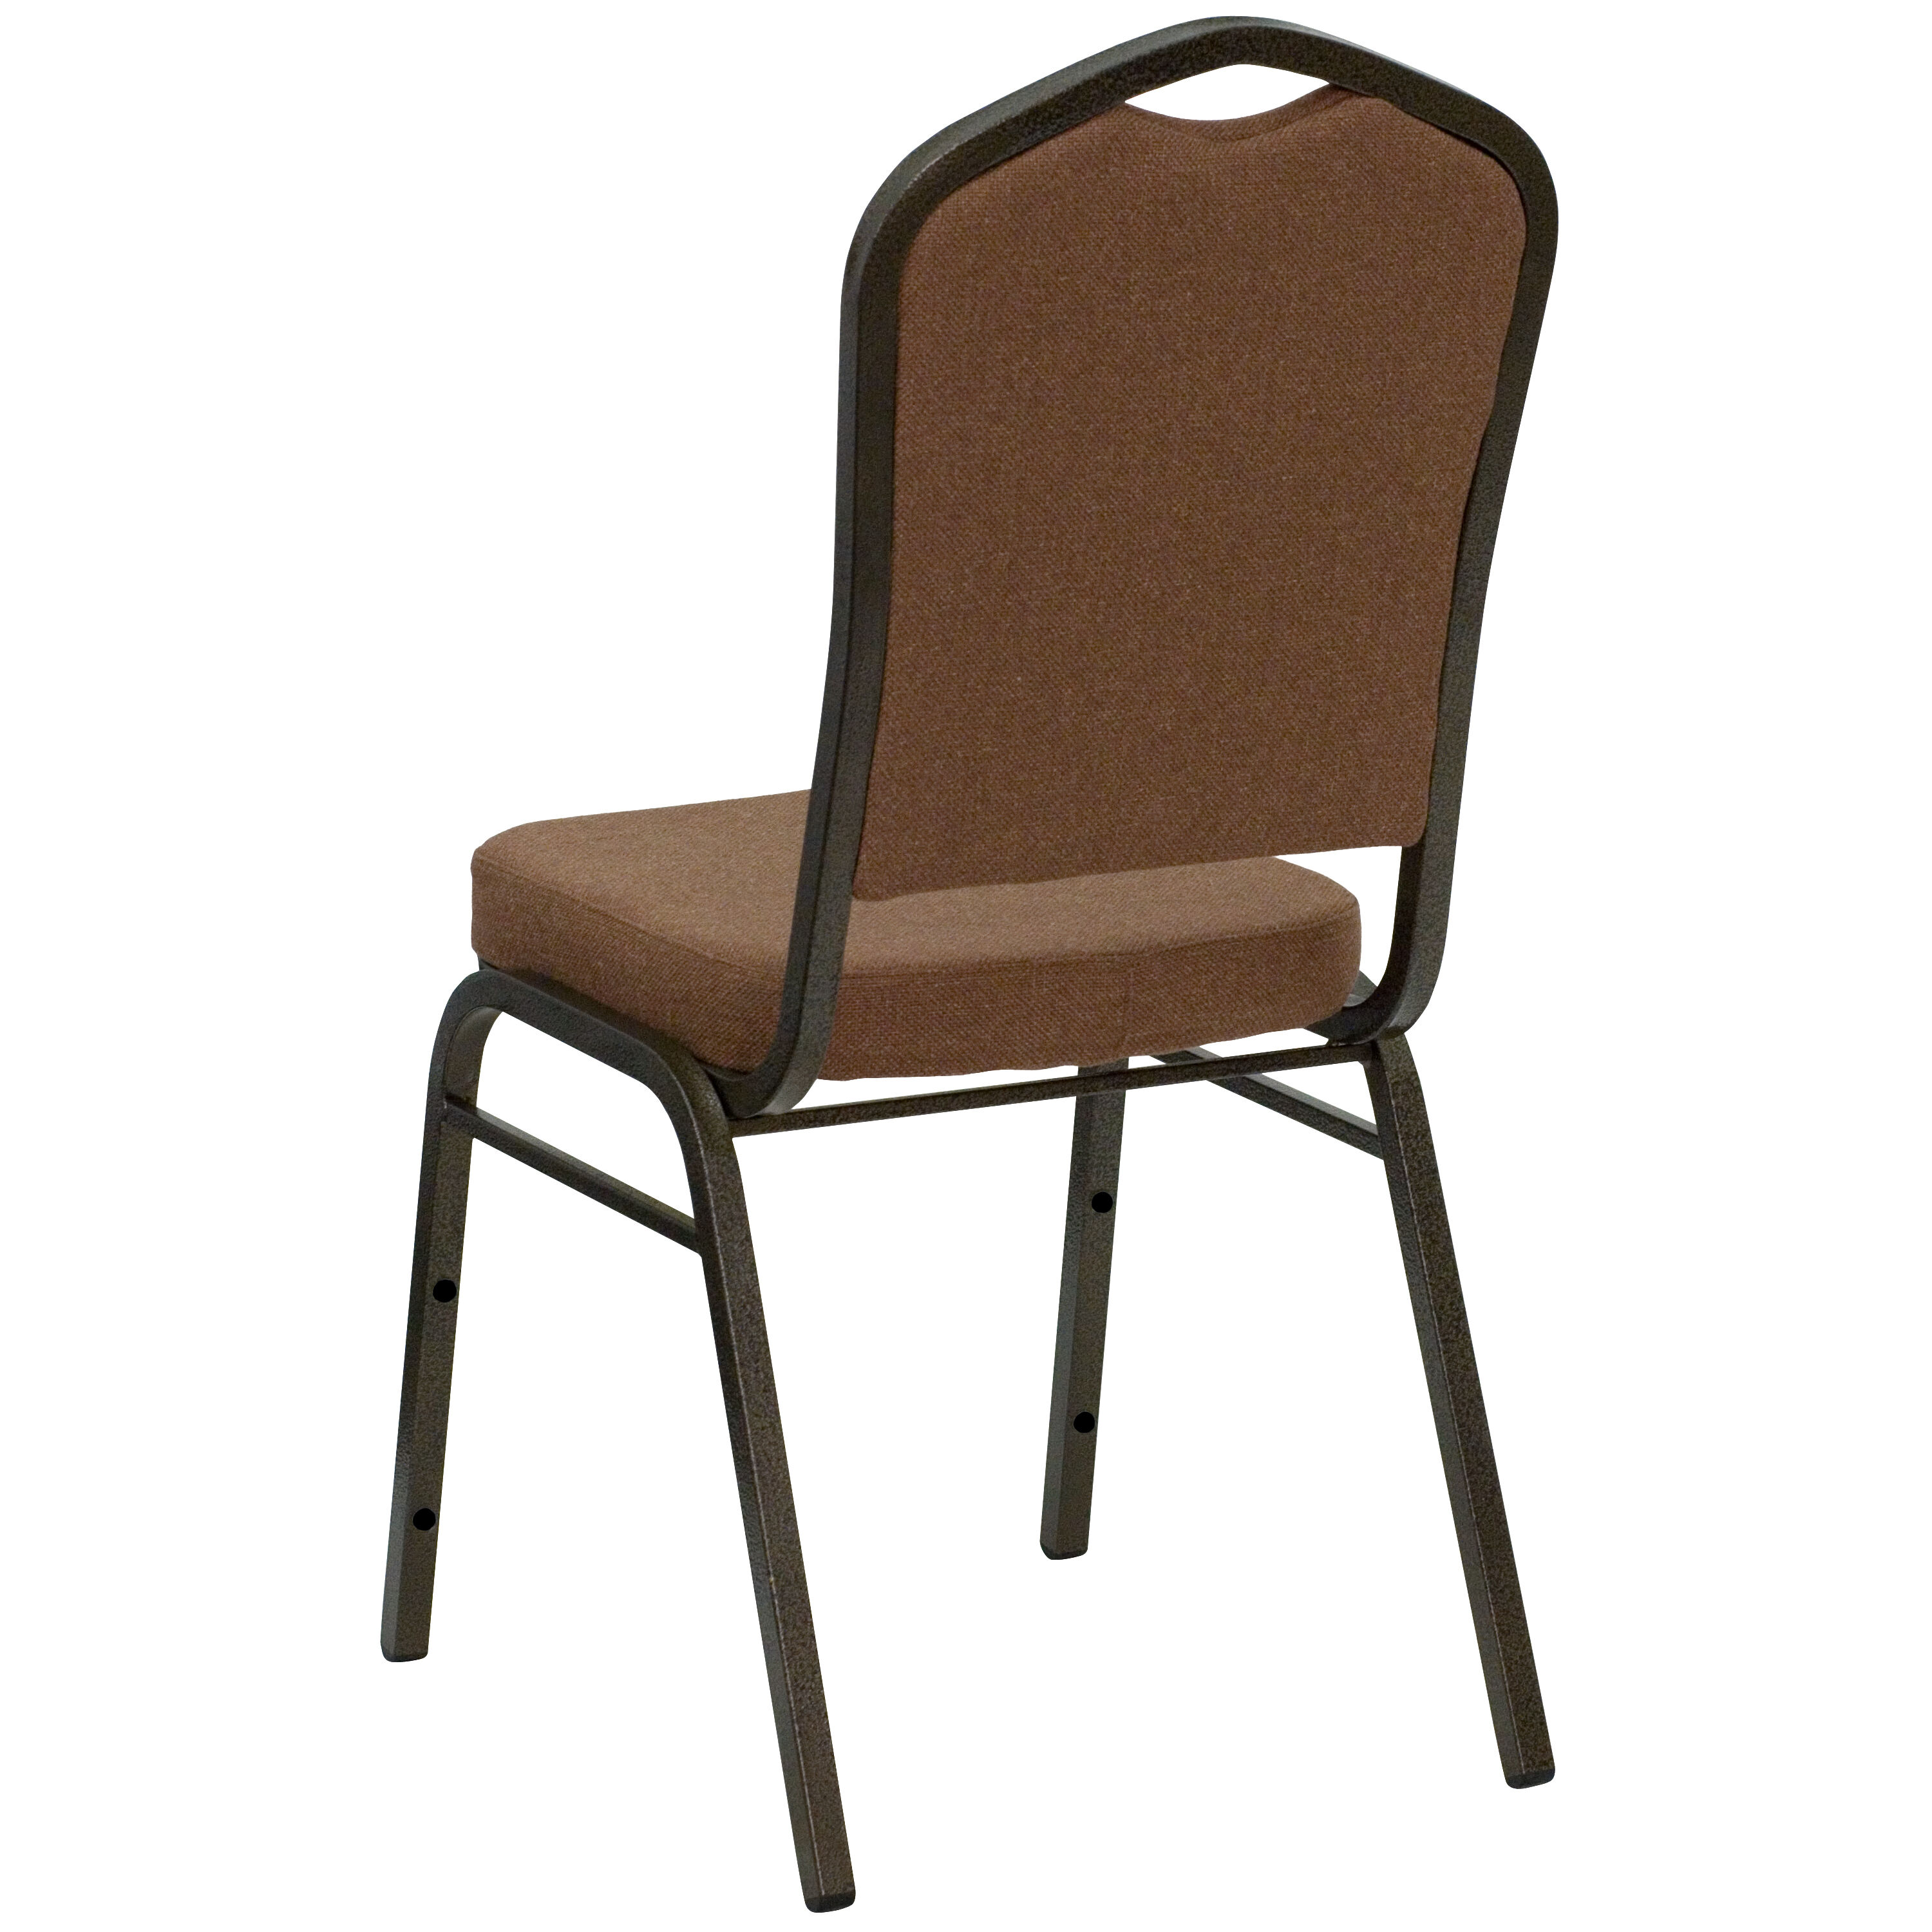 Stackable Folding Chairs Coffee Fabric Banquet Chair Ng C01 Coffee Gv Gg